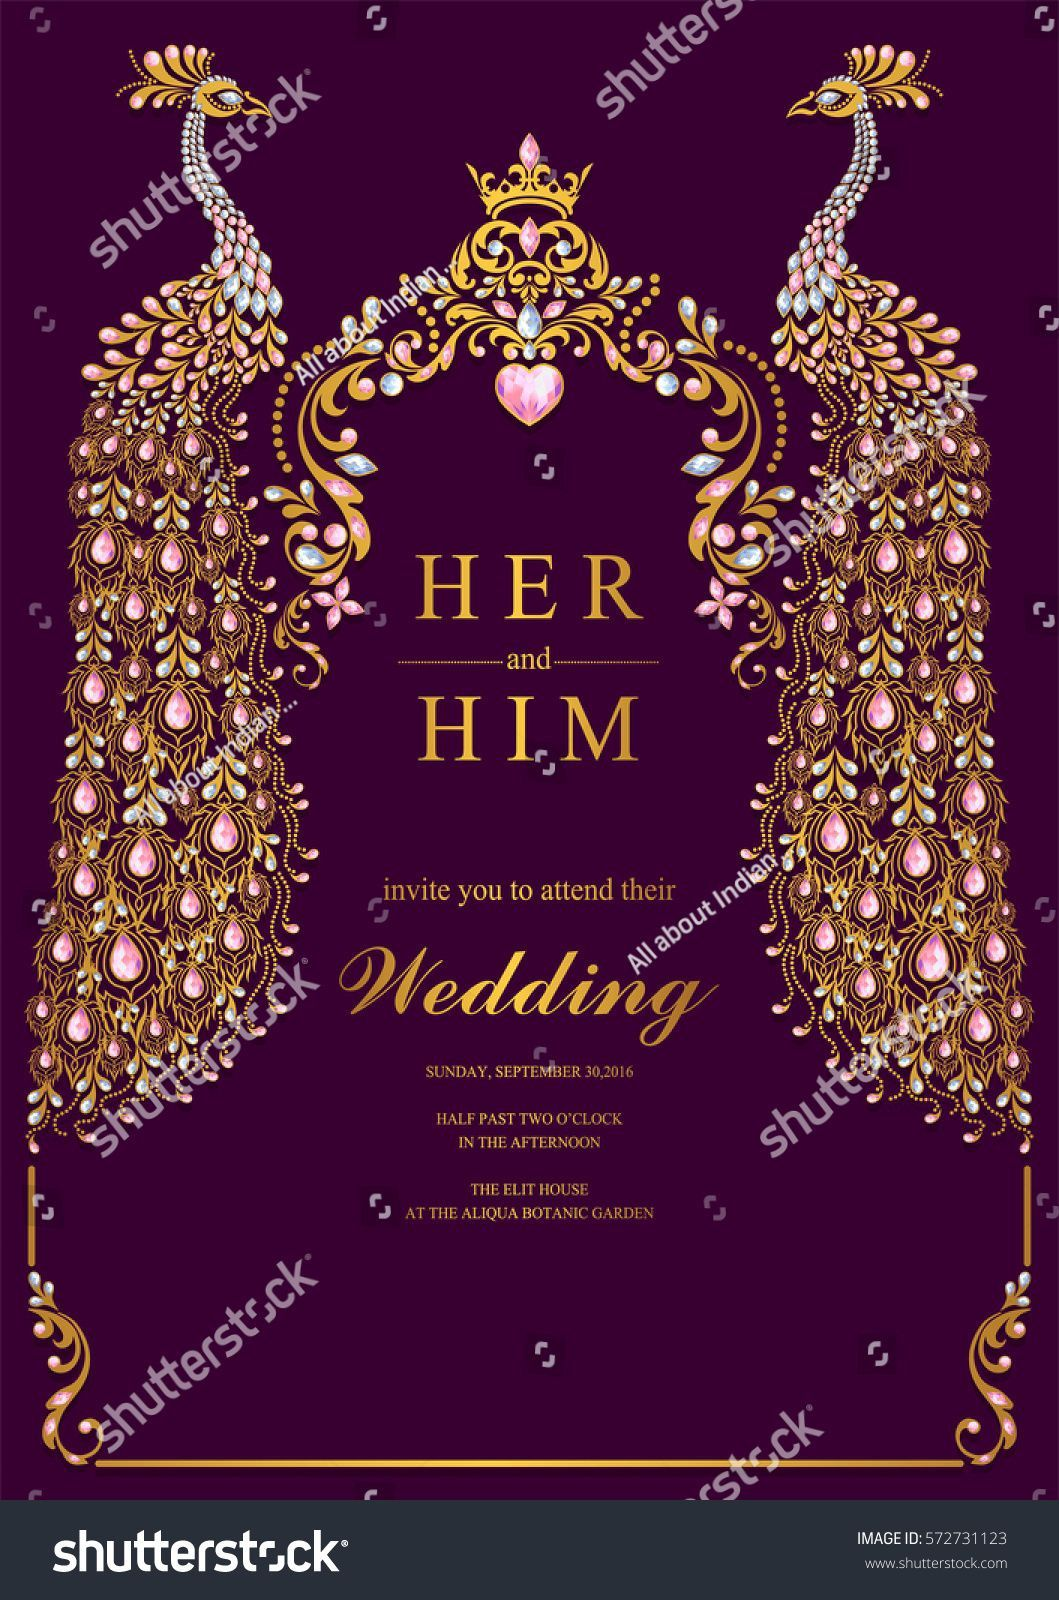 003 Unique Free Online Indian Invitation Template Image  Templates Engagement Card Maker WeddingFull